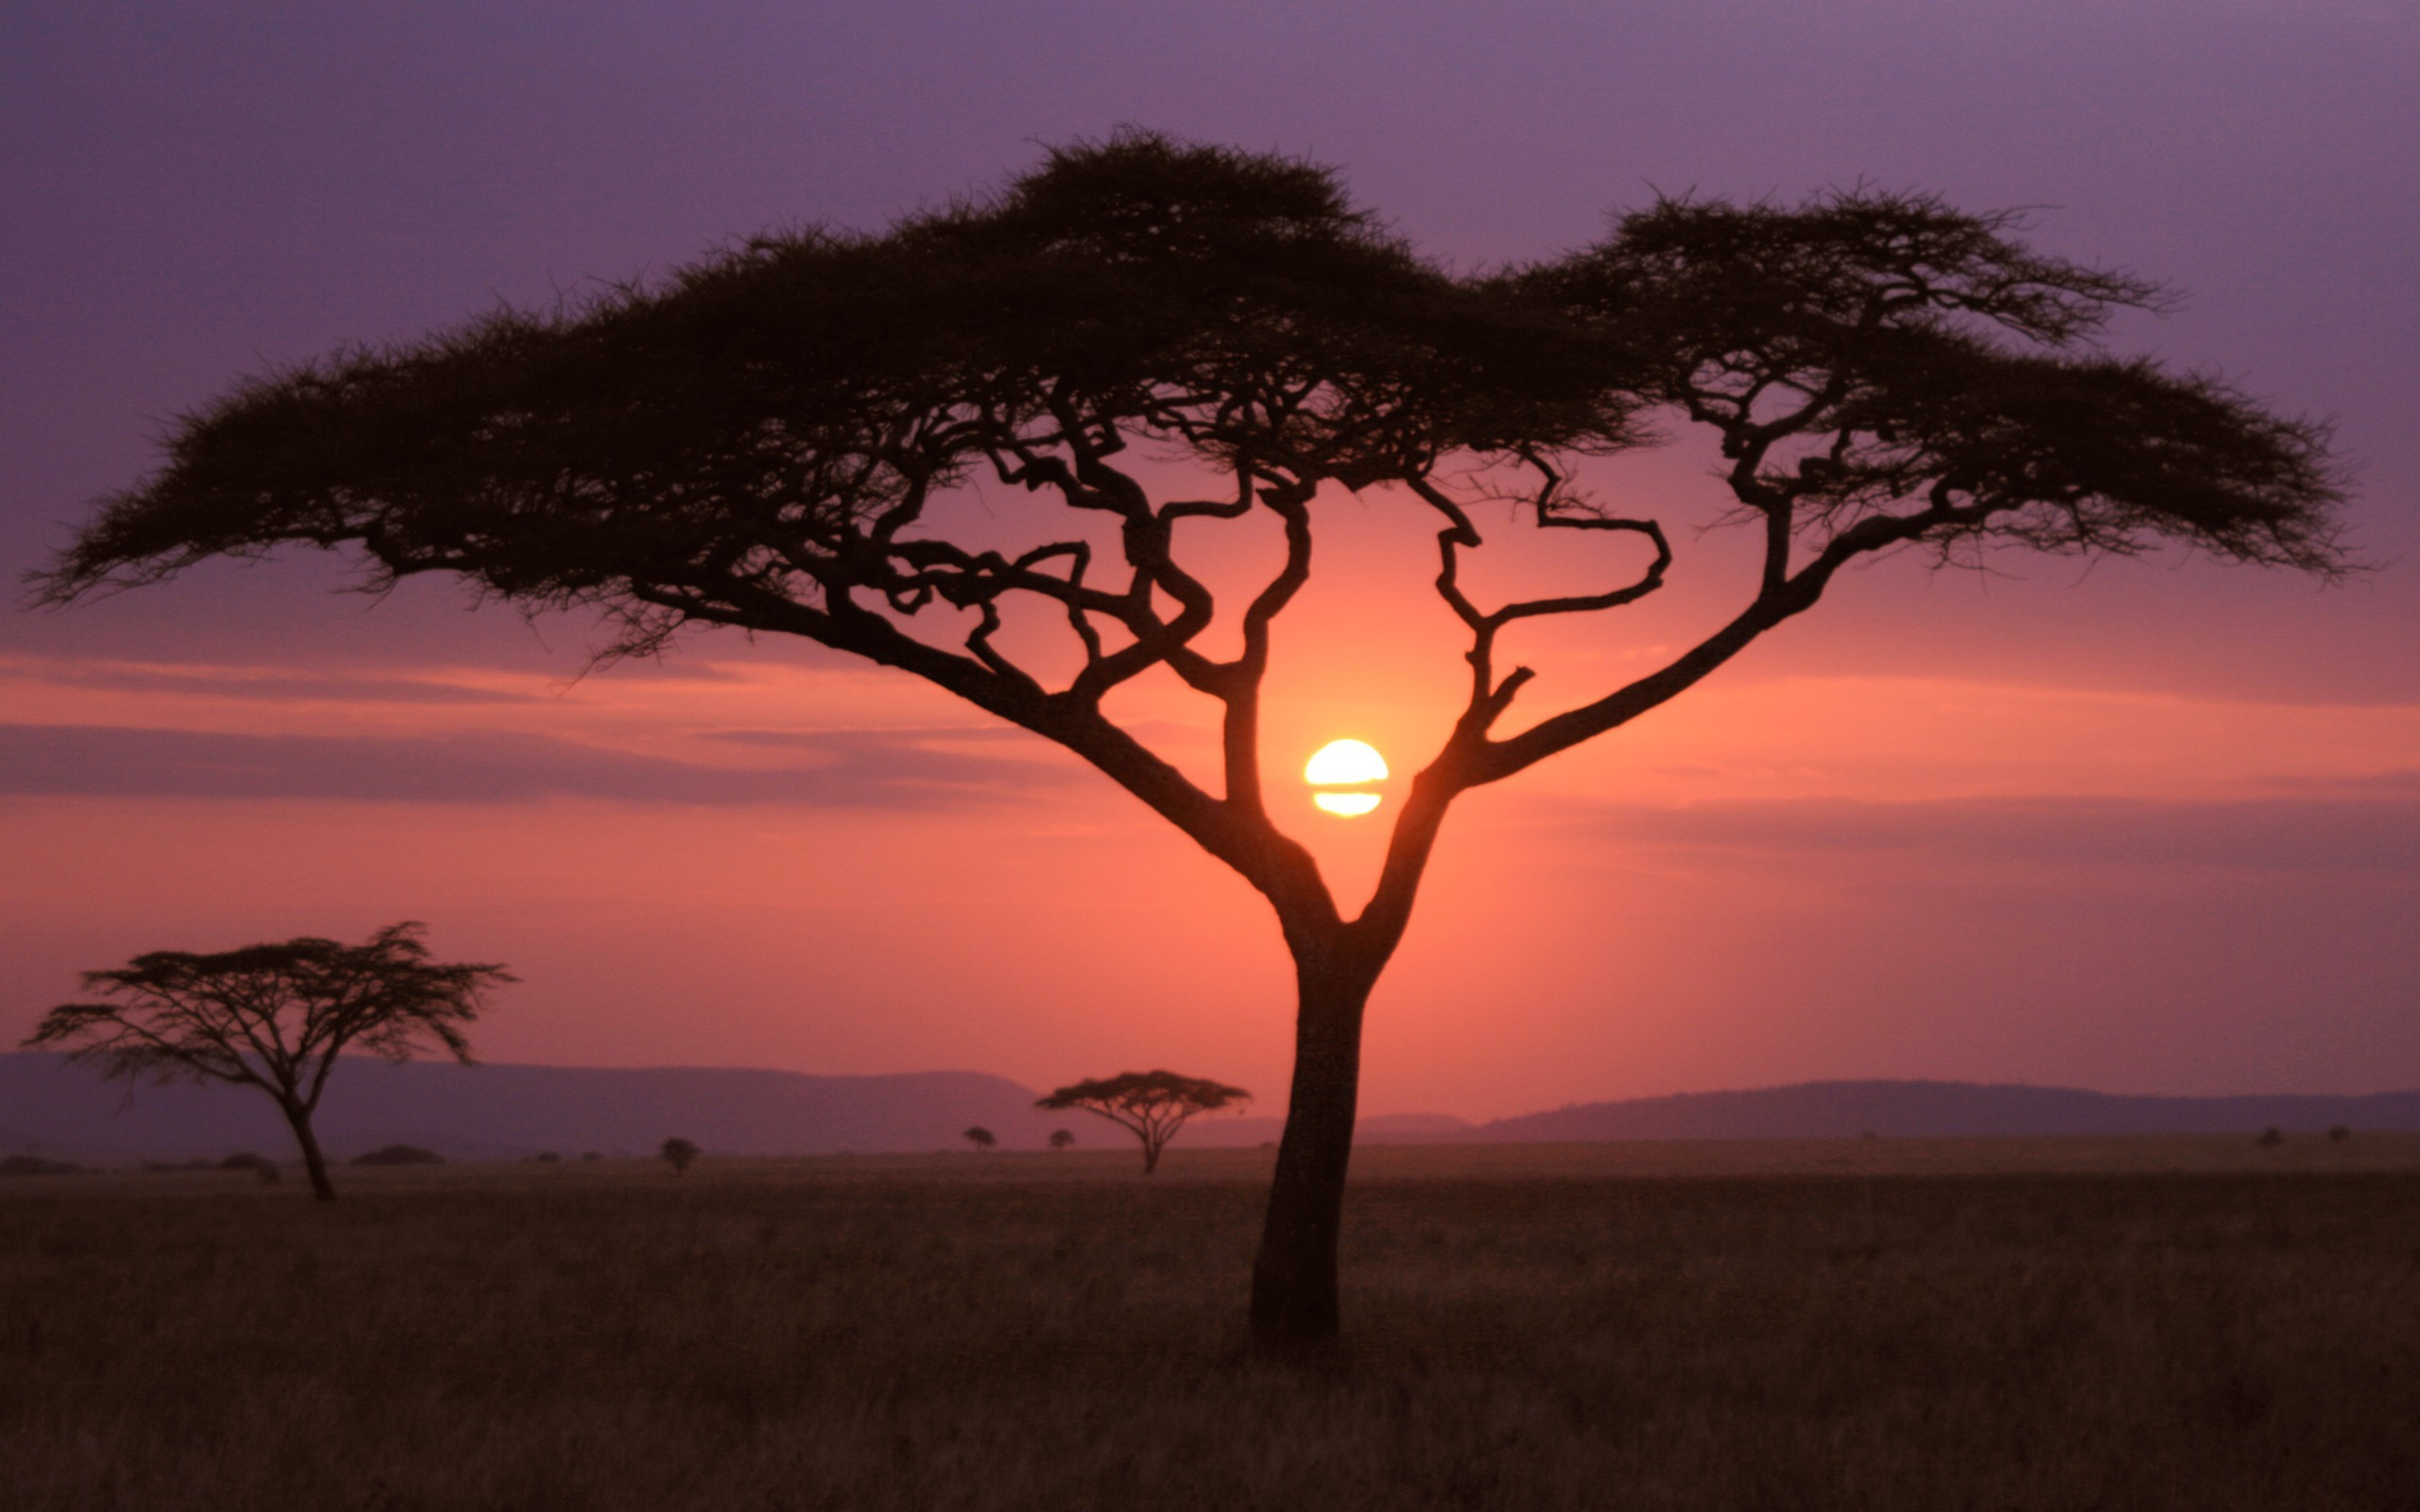 Few things can rival an African sunset